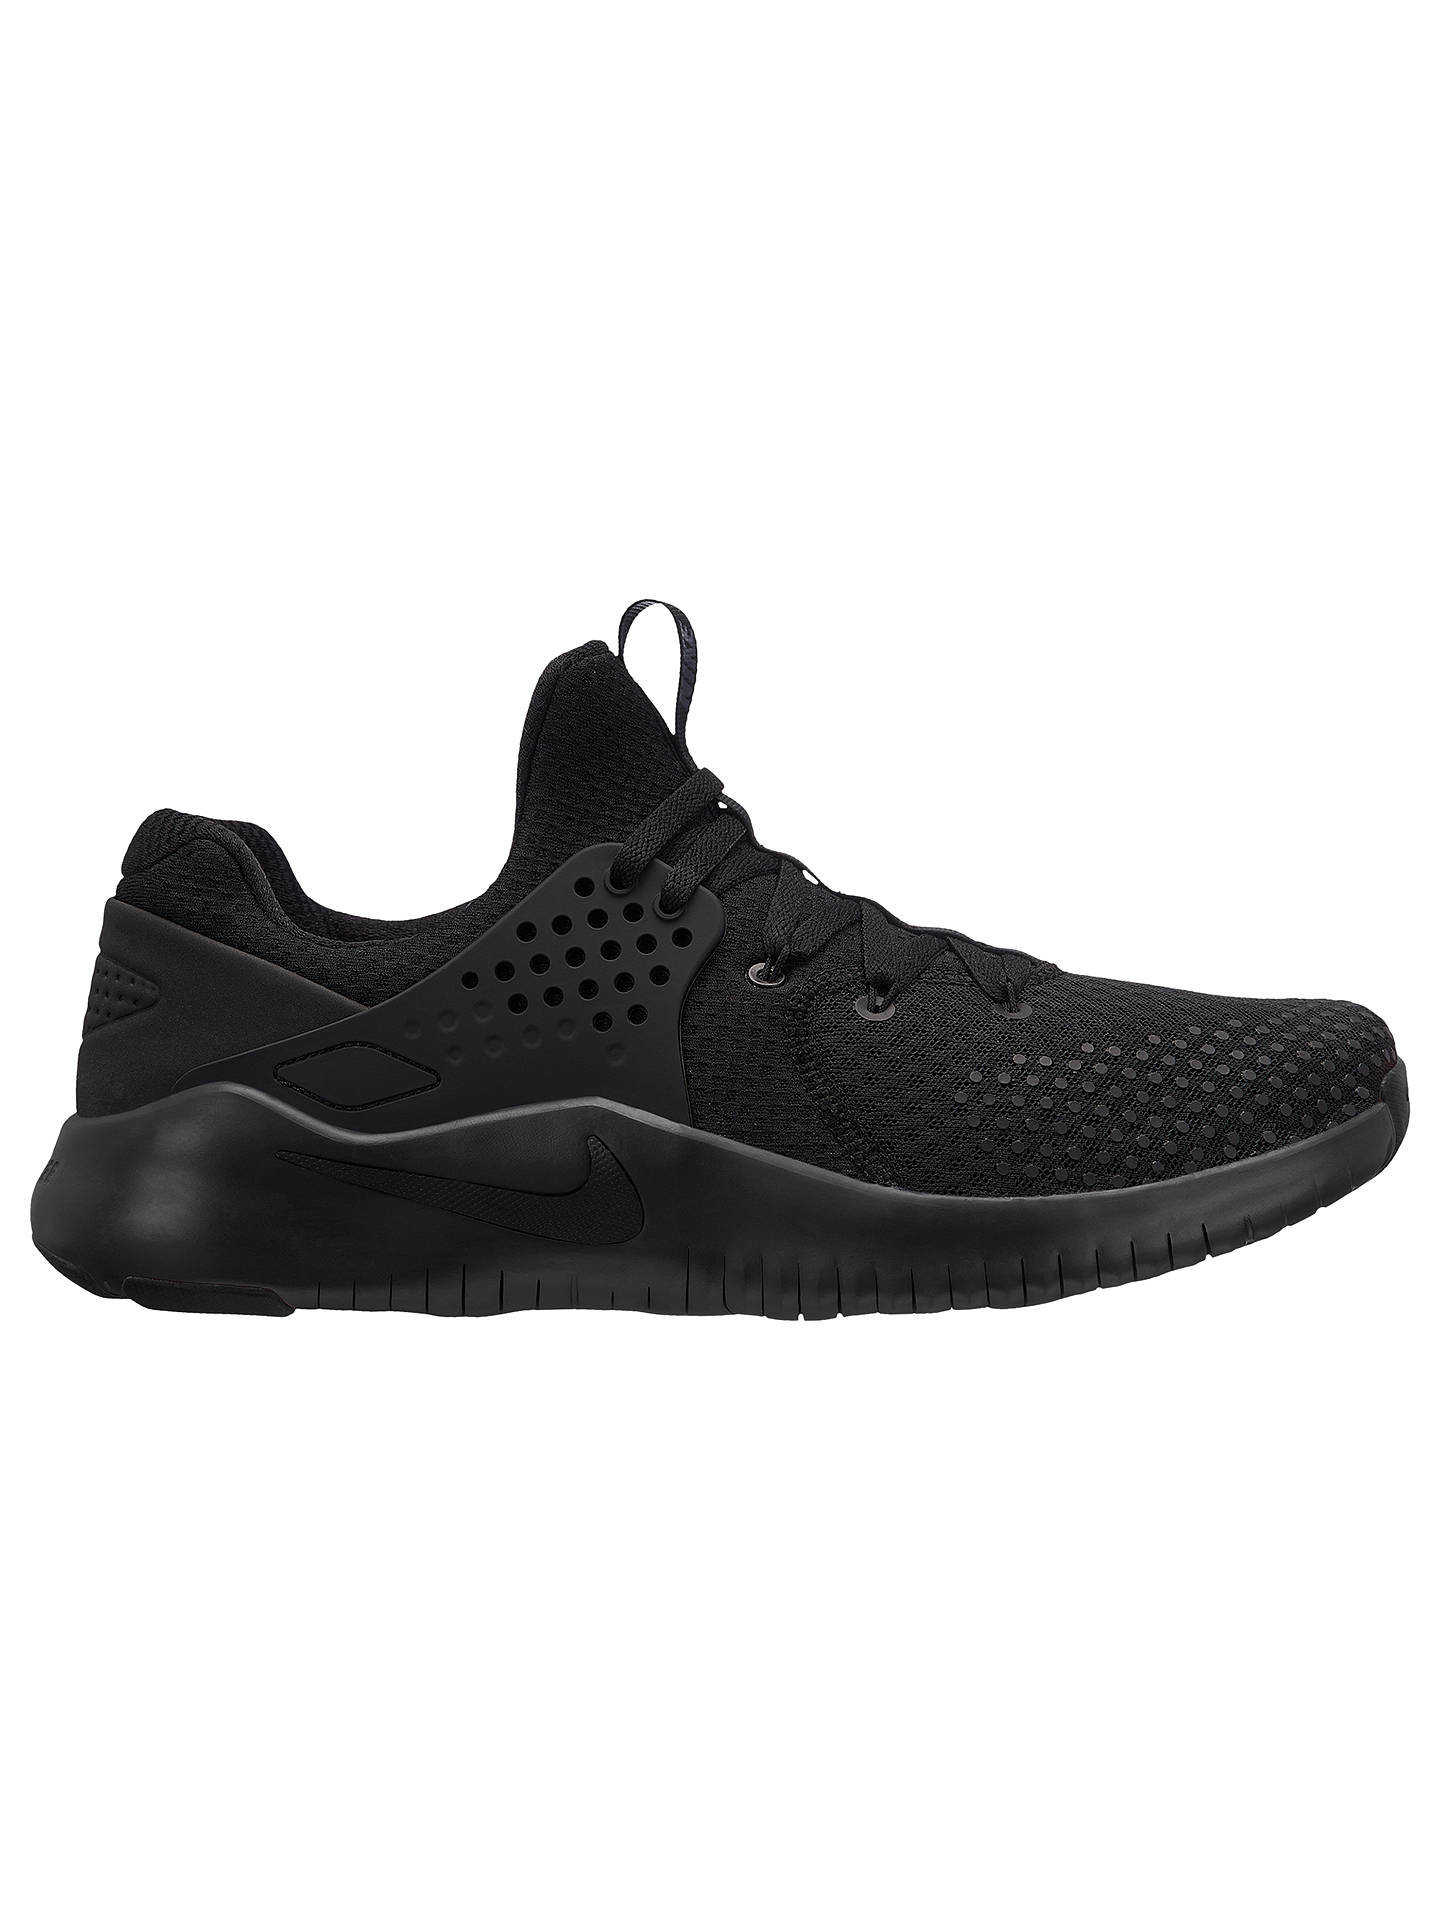 f71d5ac572f7 Buy Nike Free Trainer v8 Men s Training Shoes